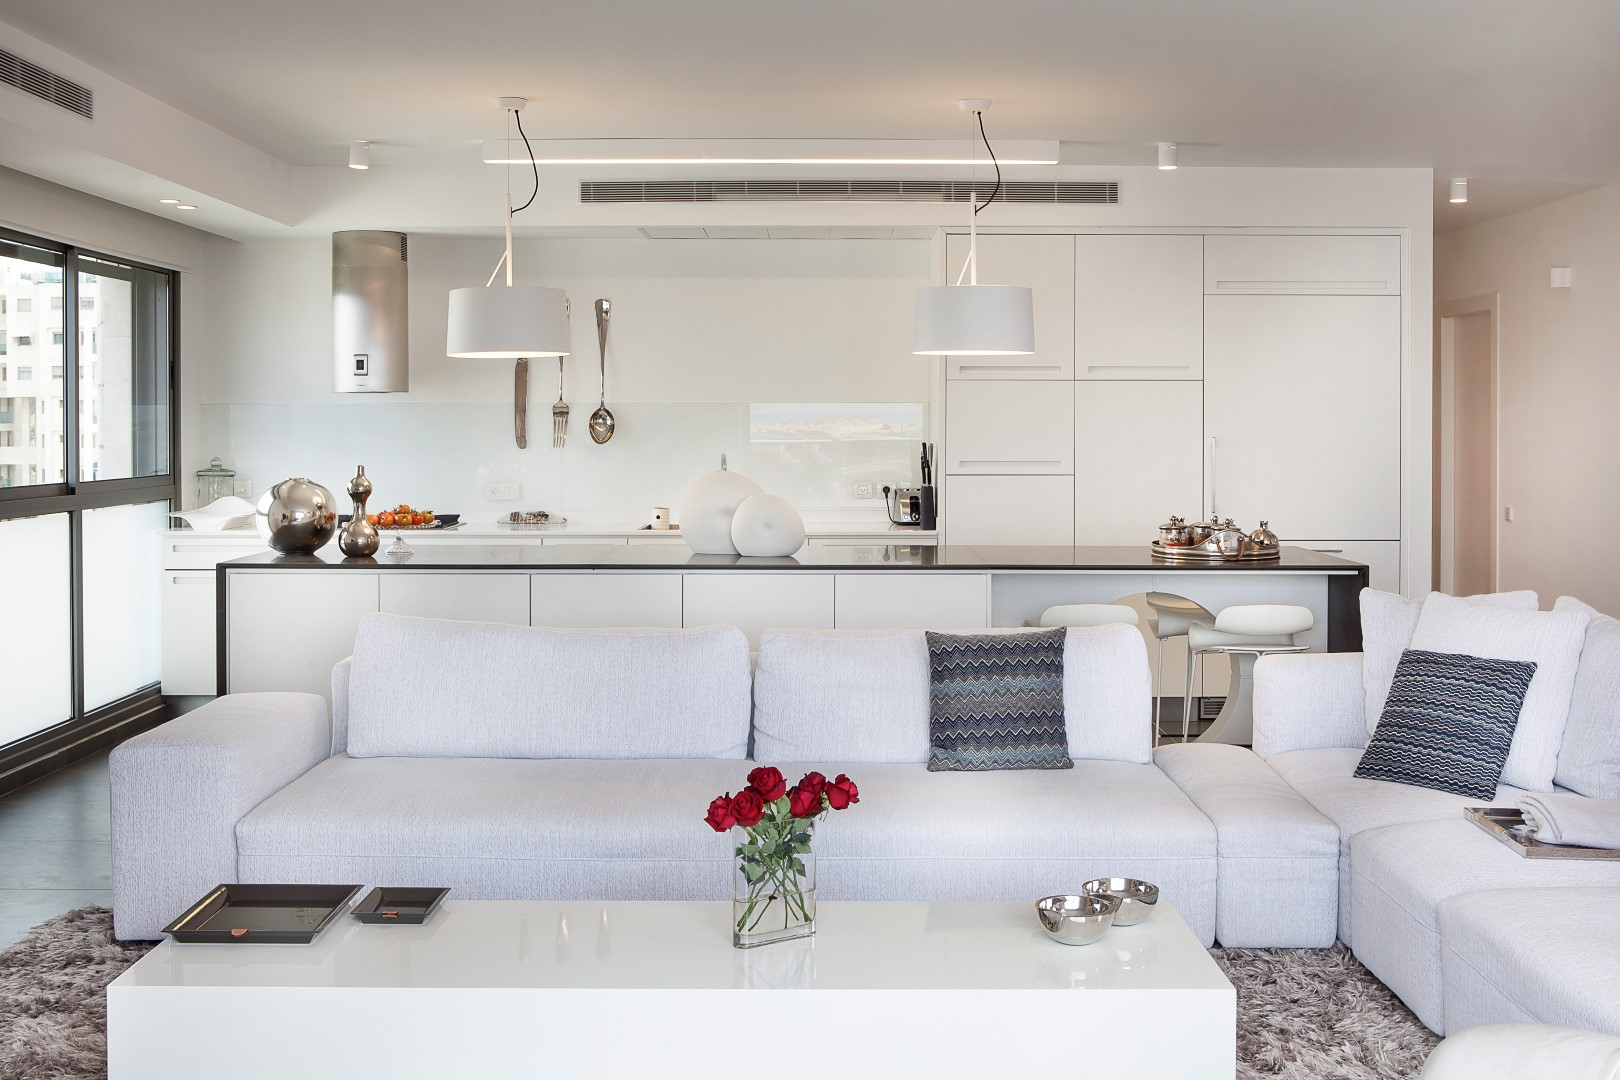 Azorei Chen Penthouse - Kitchen 4